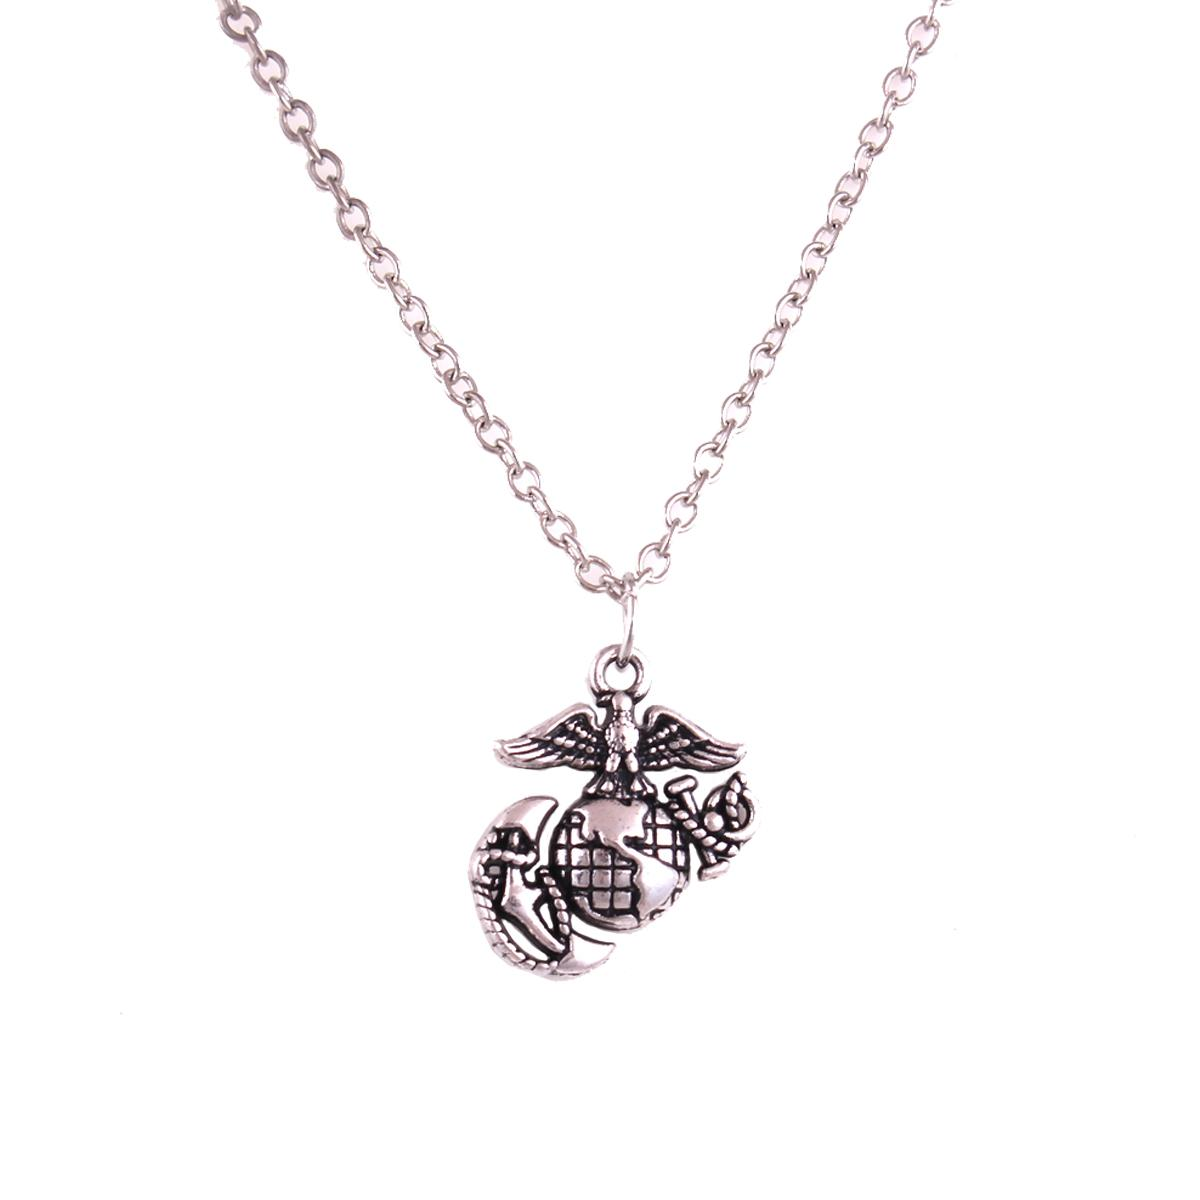 Vintage Eagle Globe And Anchor Pendant Marine Corps Link Chain Necklace for Men and Women